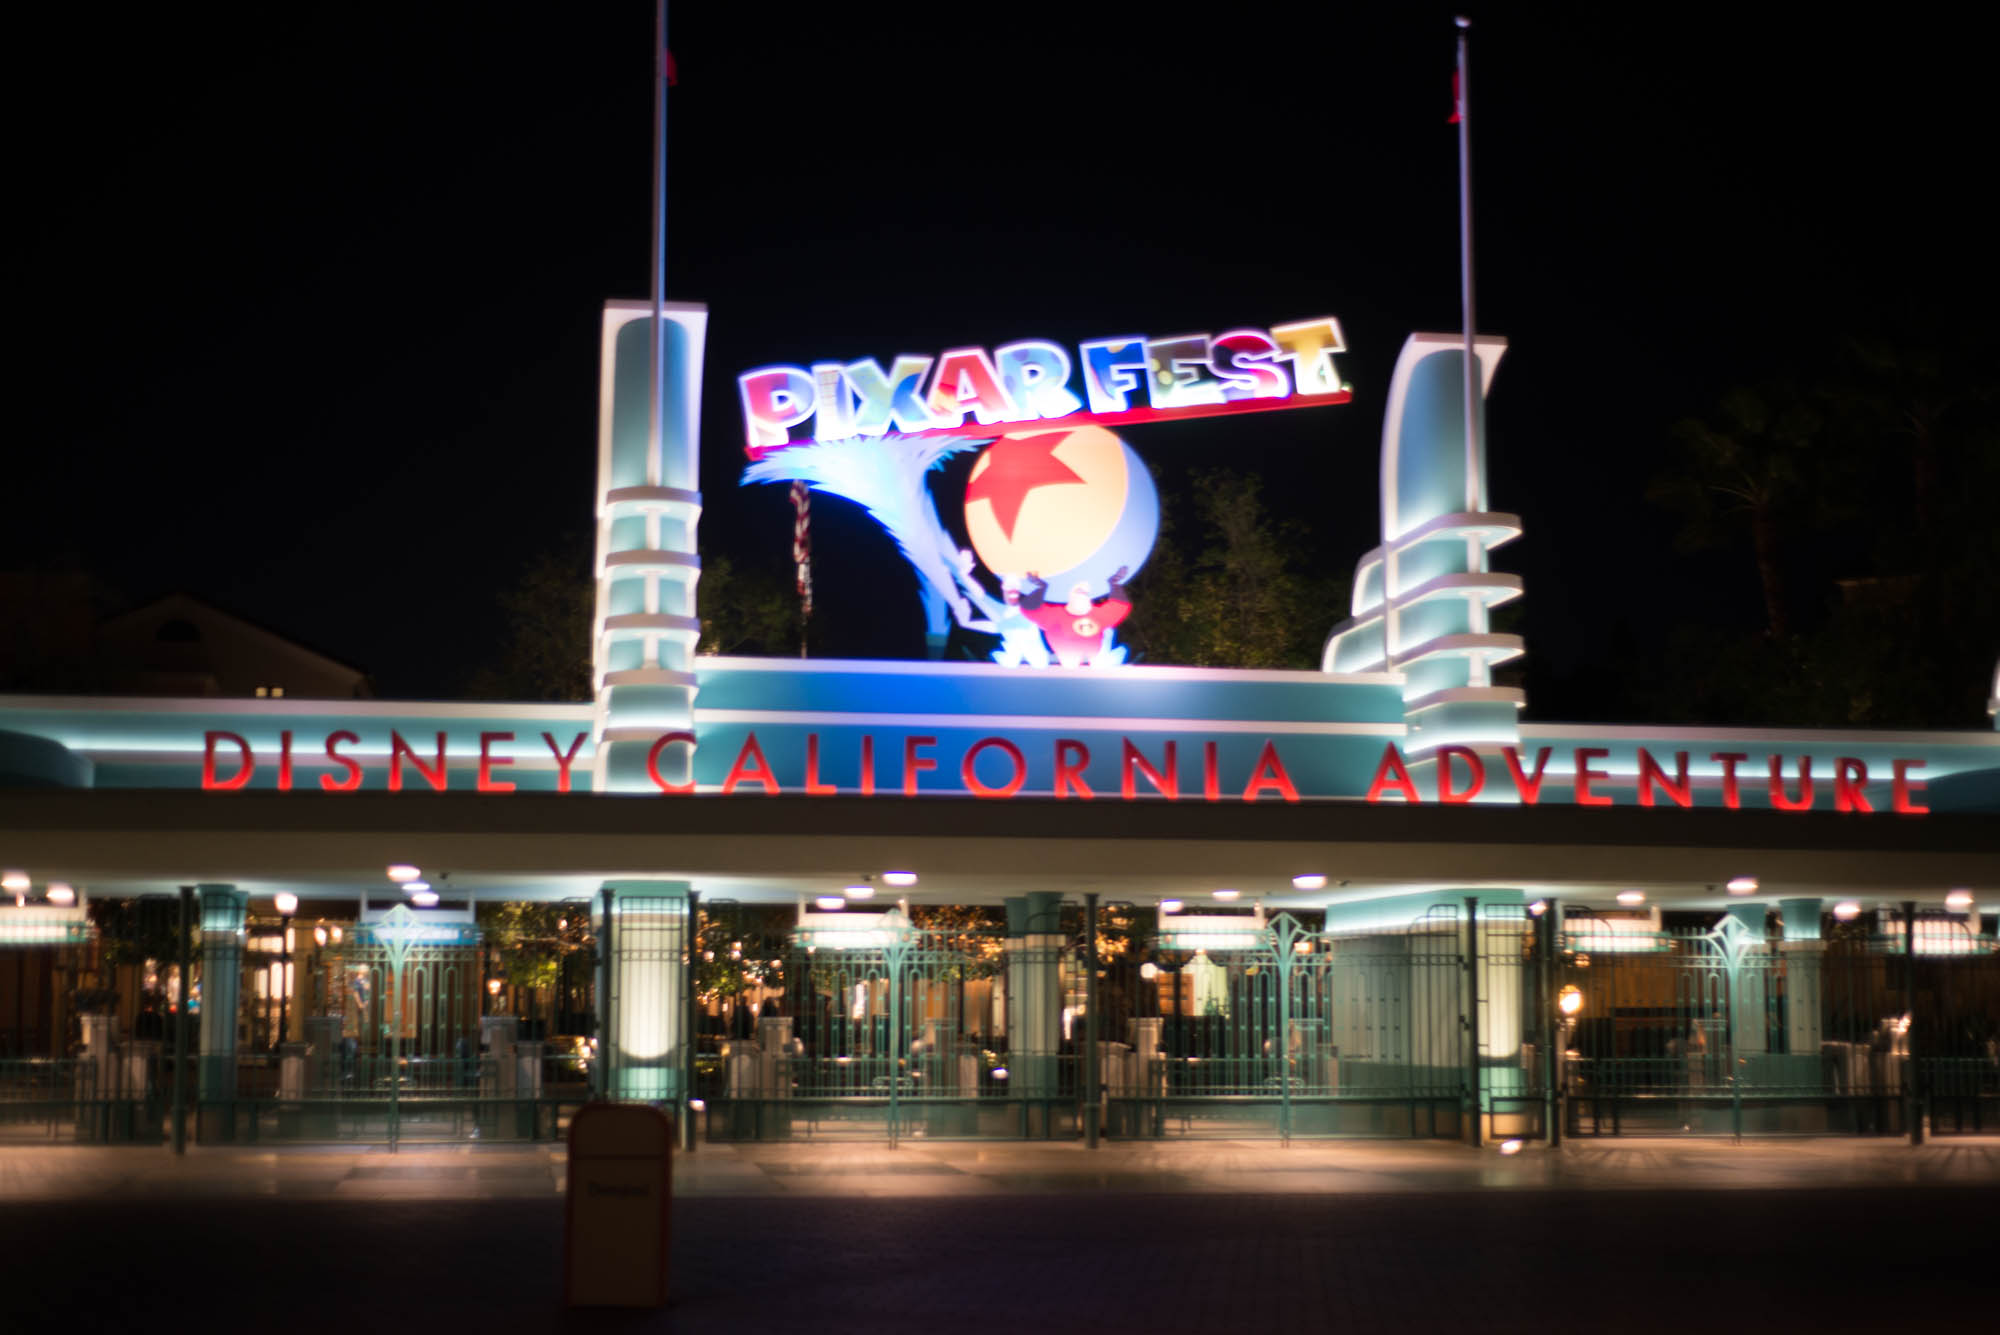 Pixar Fest Sign at Disneyland's California Adventure Entrance